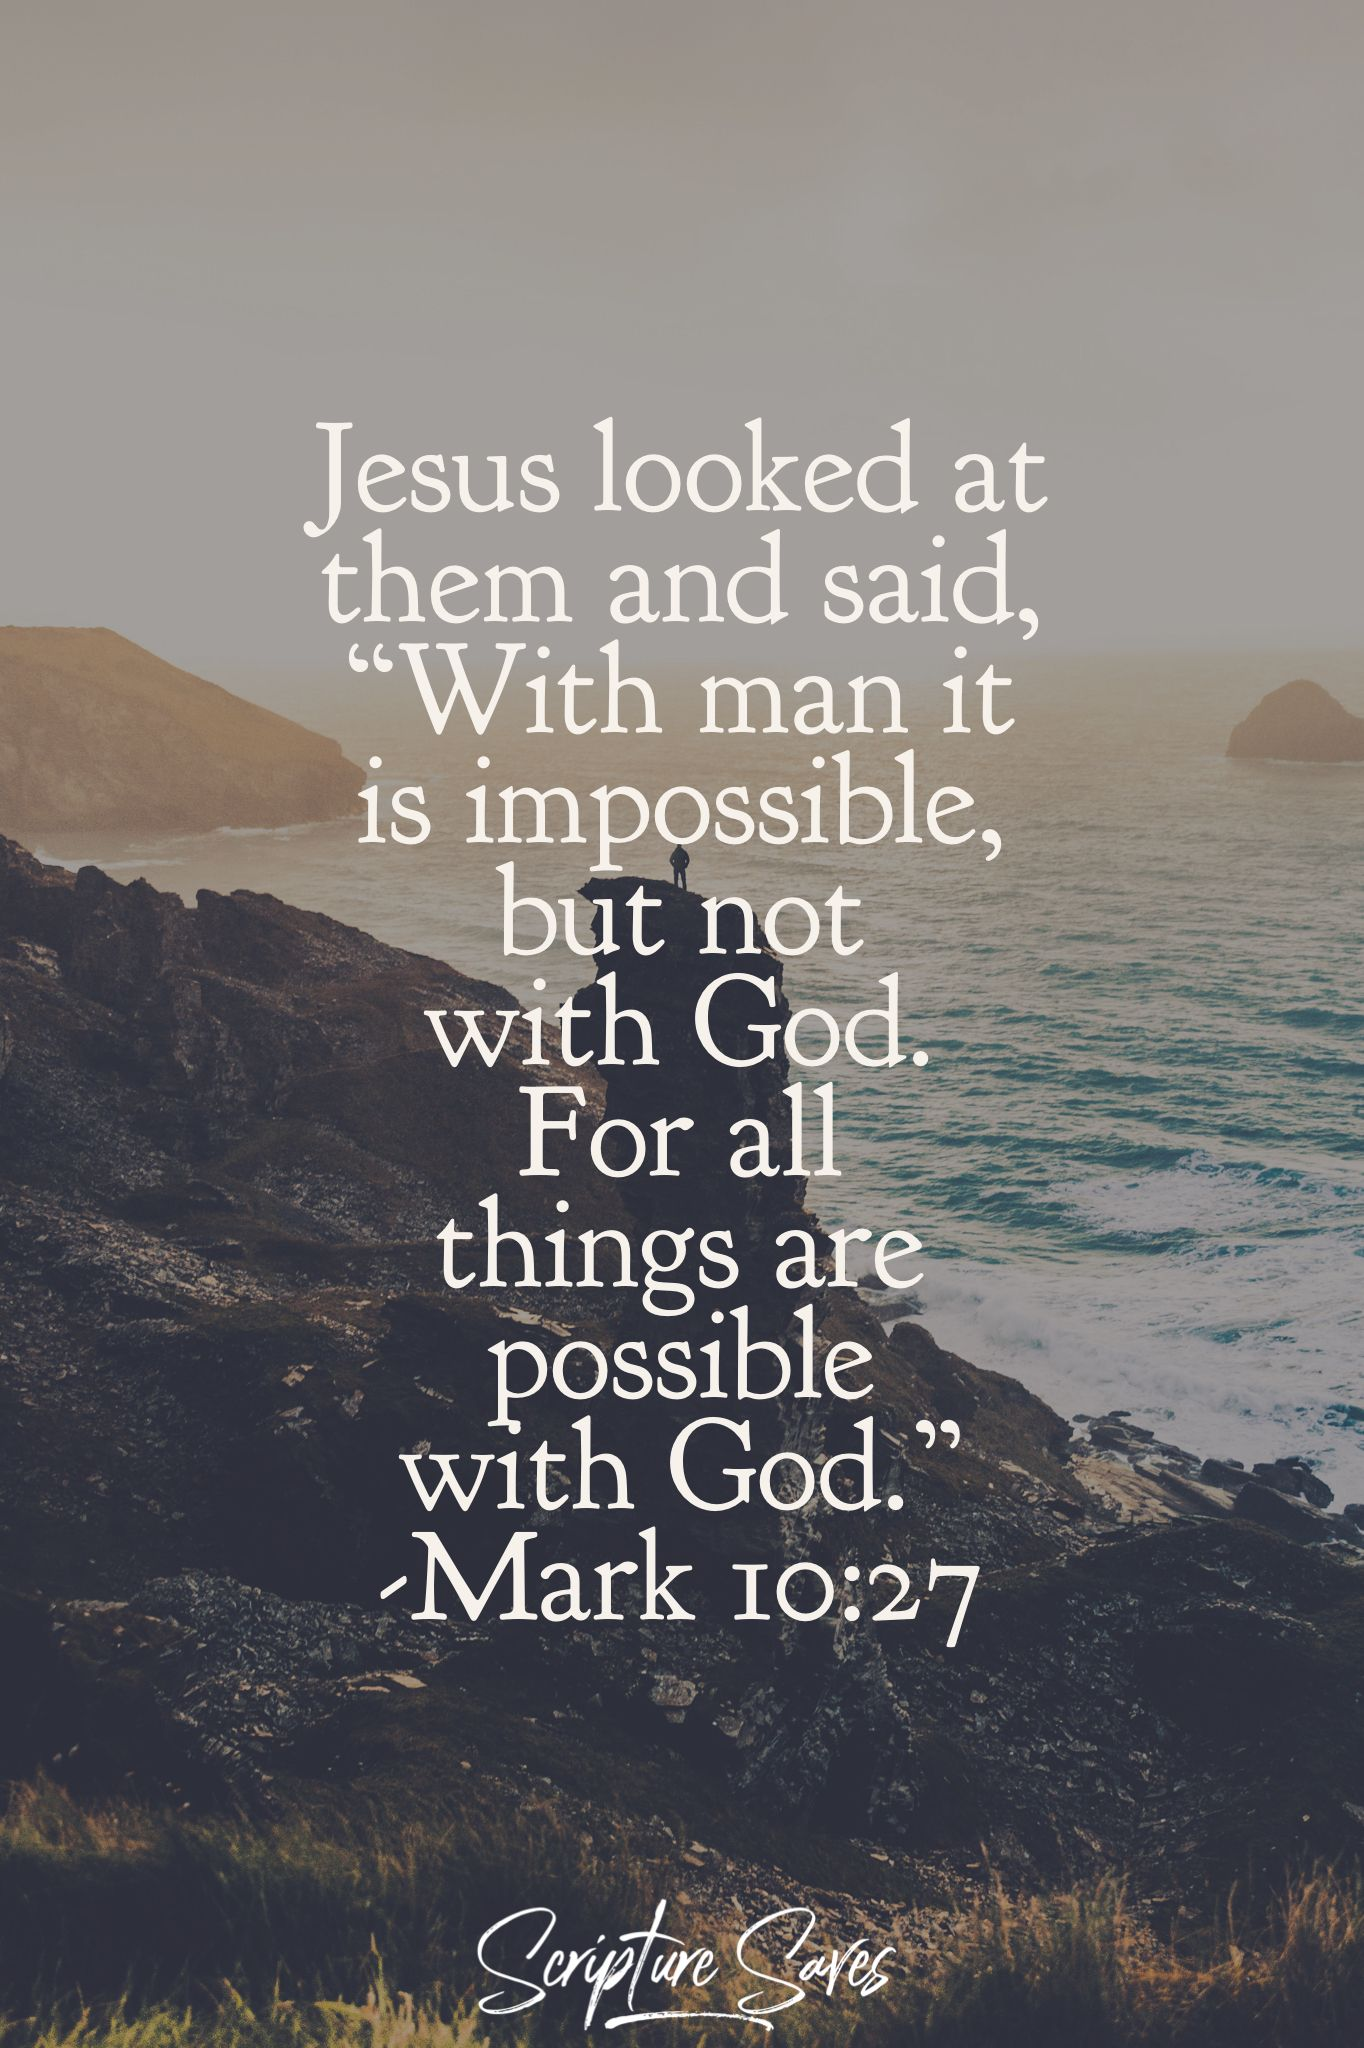 Impossible Is Nothing With God With God You Can Accomplish Anything Strength Scripture Quotes Scripture Scripture Quotes